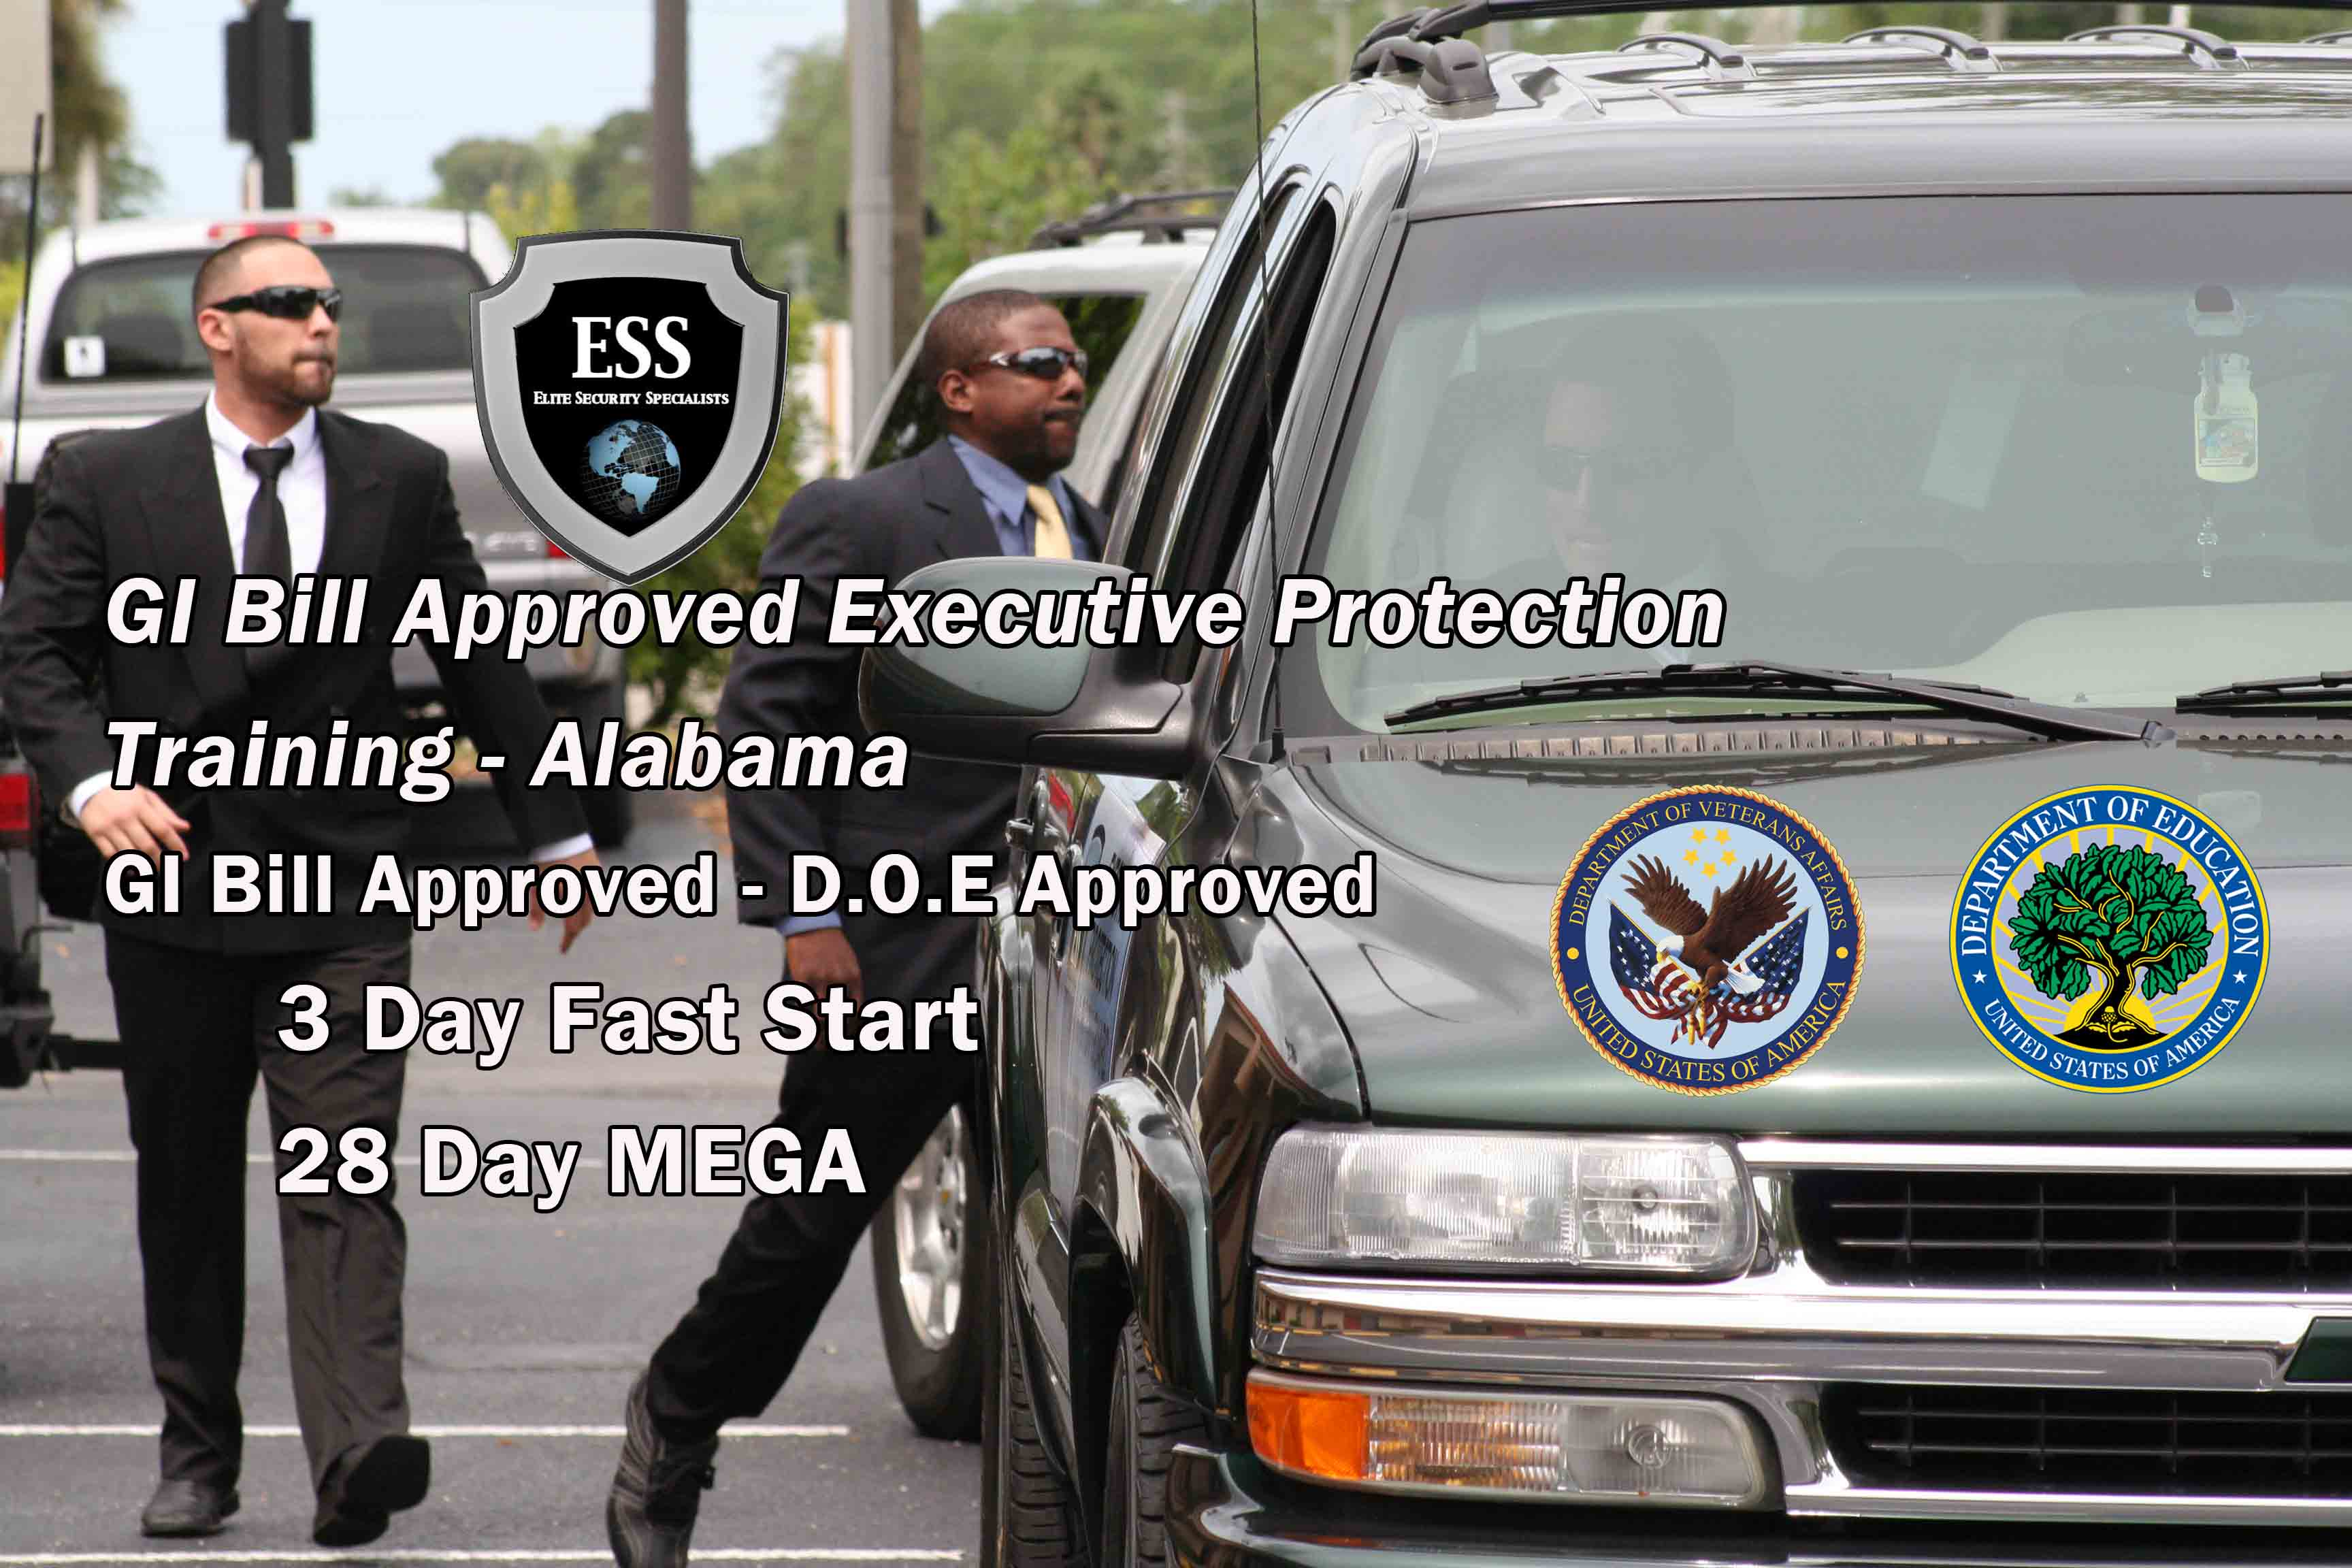 GI Bill Approved Bodyguard Training - Alabama